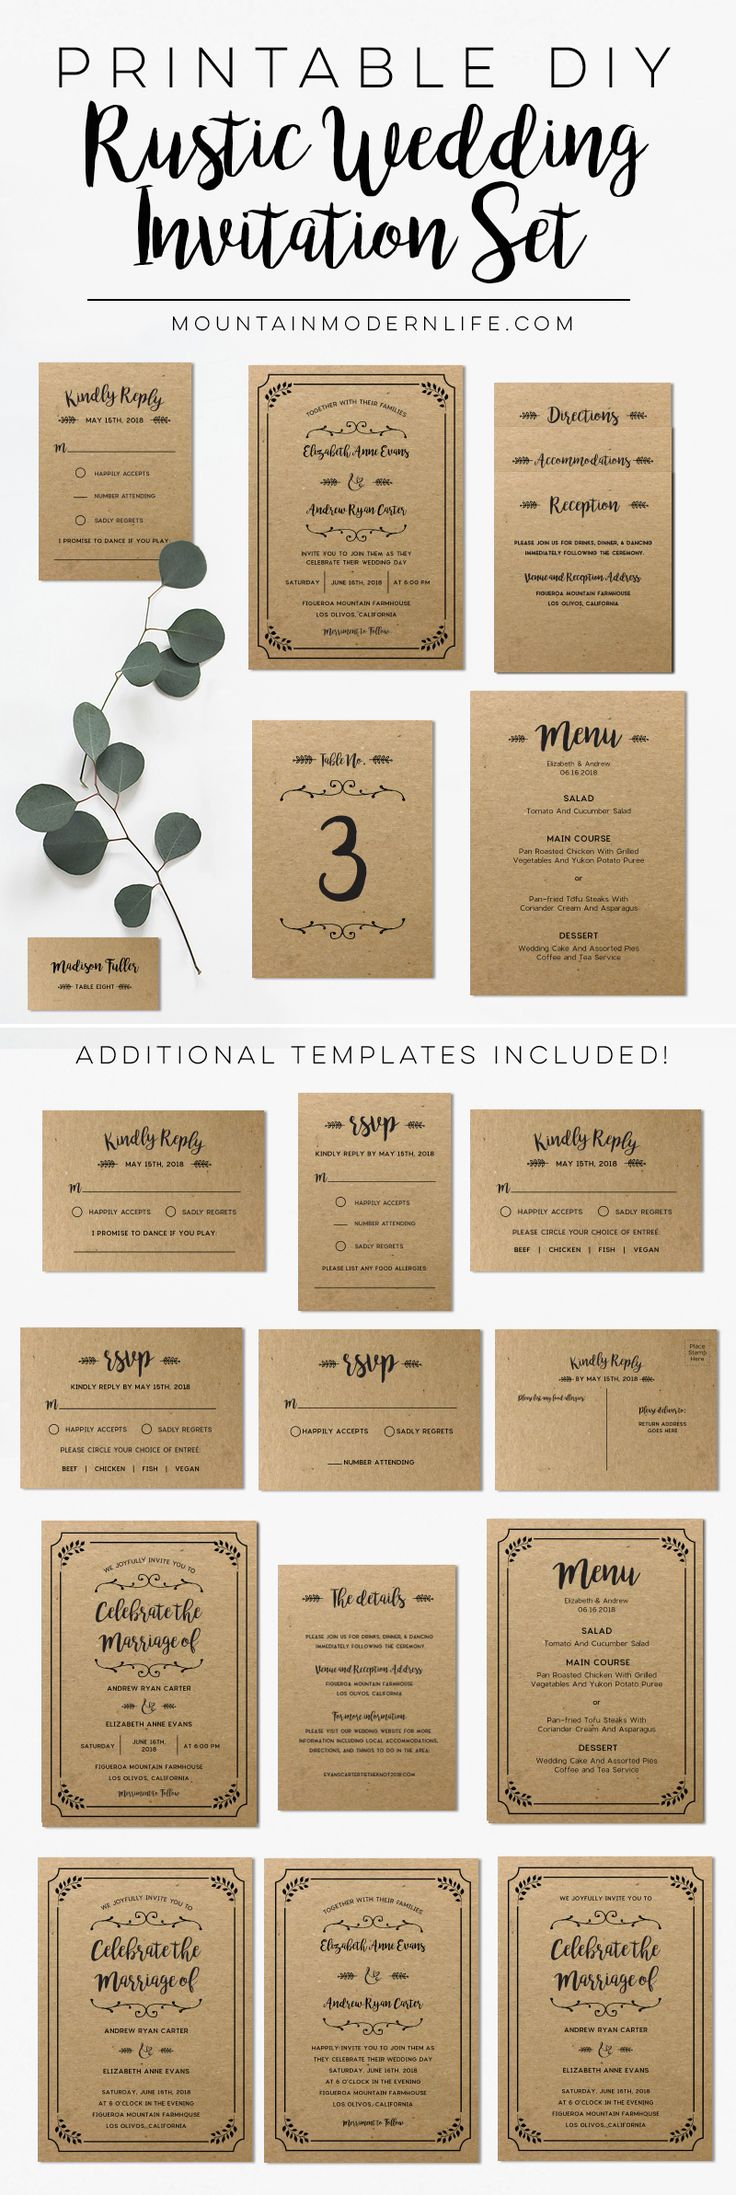 Planning A Rustic Inspired Wedding? Save Money By Customizing This  Printable DIY Wedding Invitation